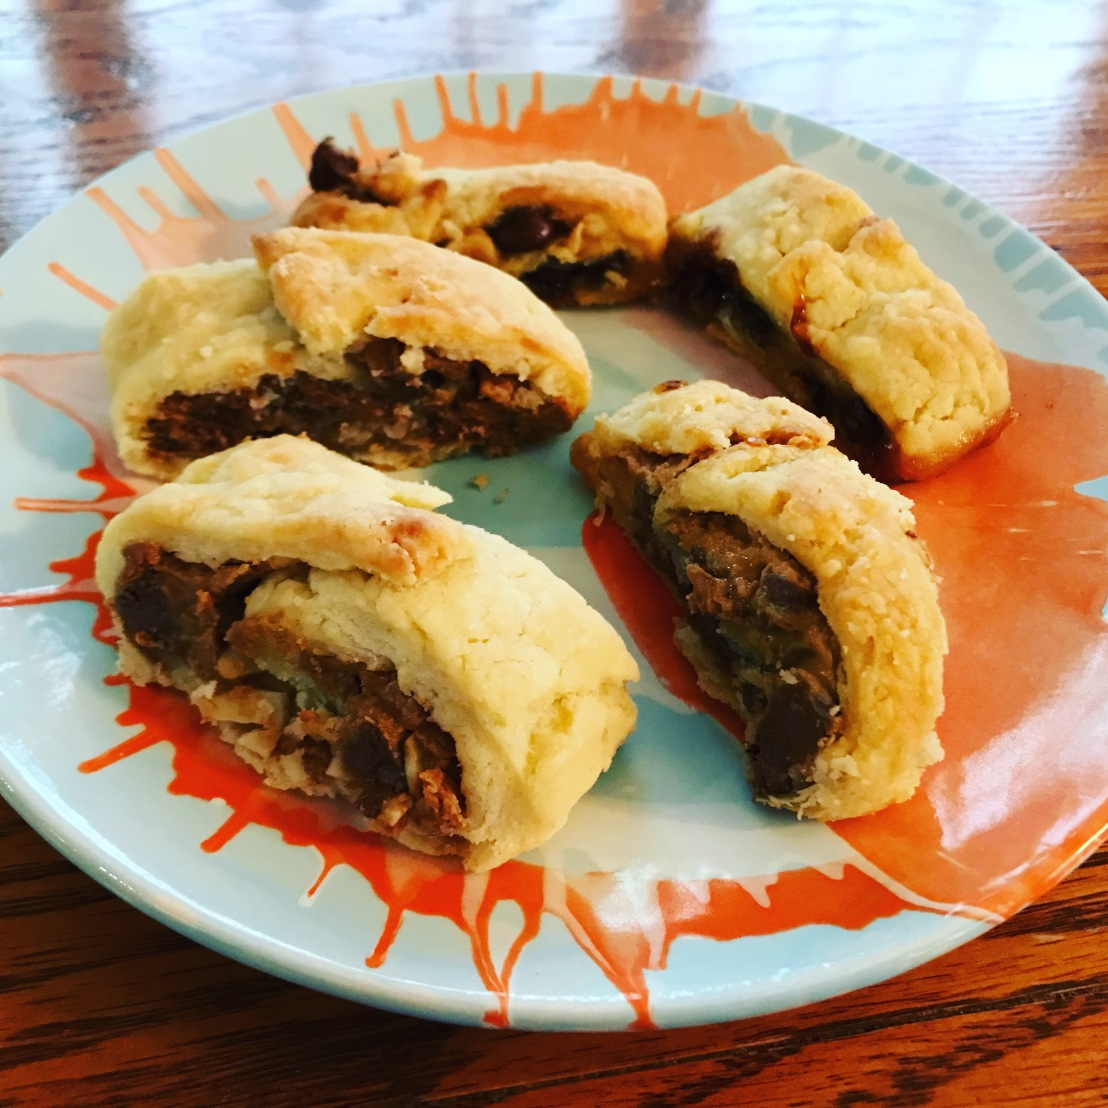 Baking Chronicle No. 49: More Rugelach!